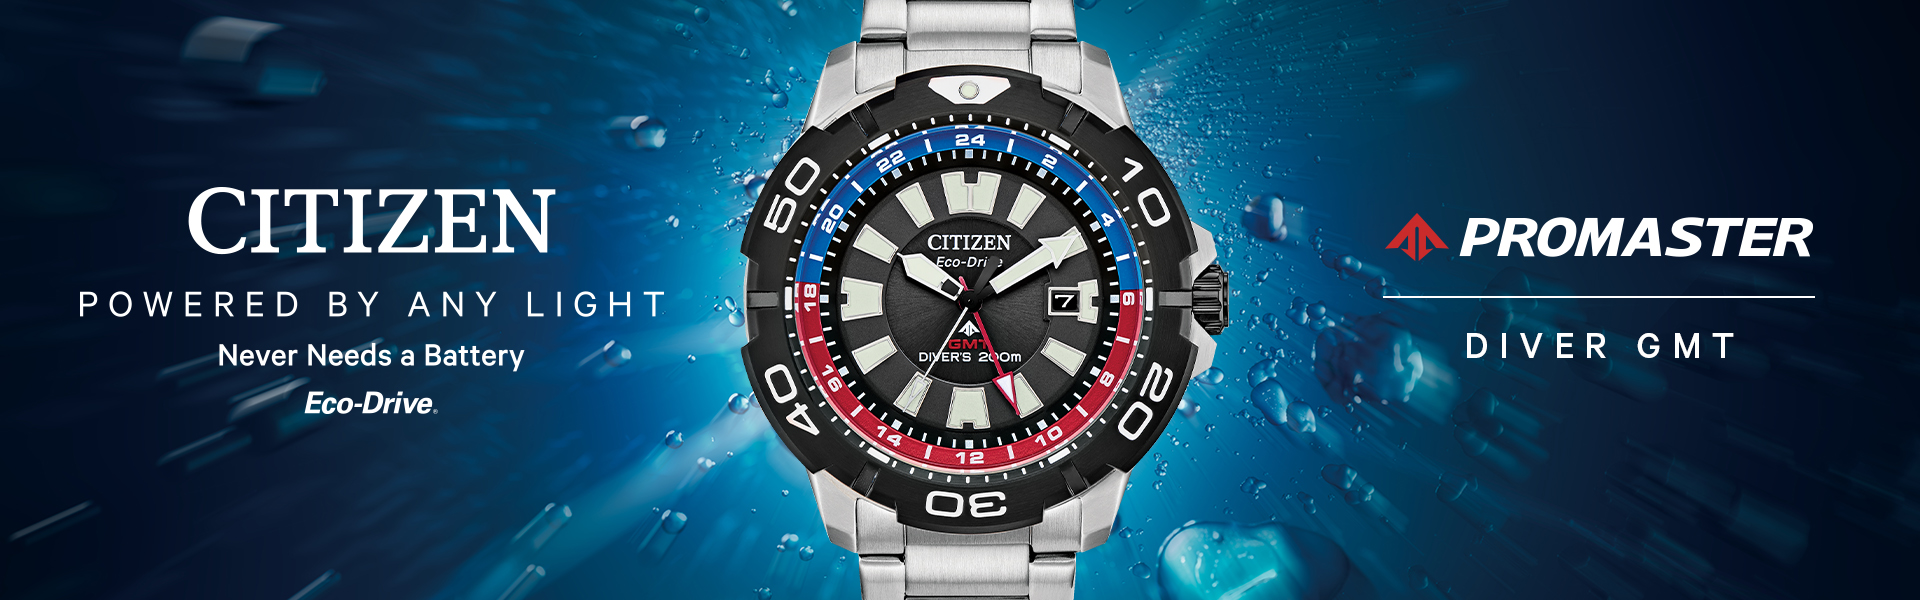 Precision Jewelers Citizen